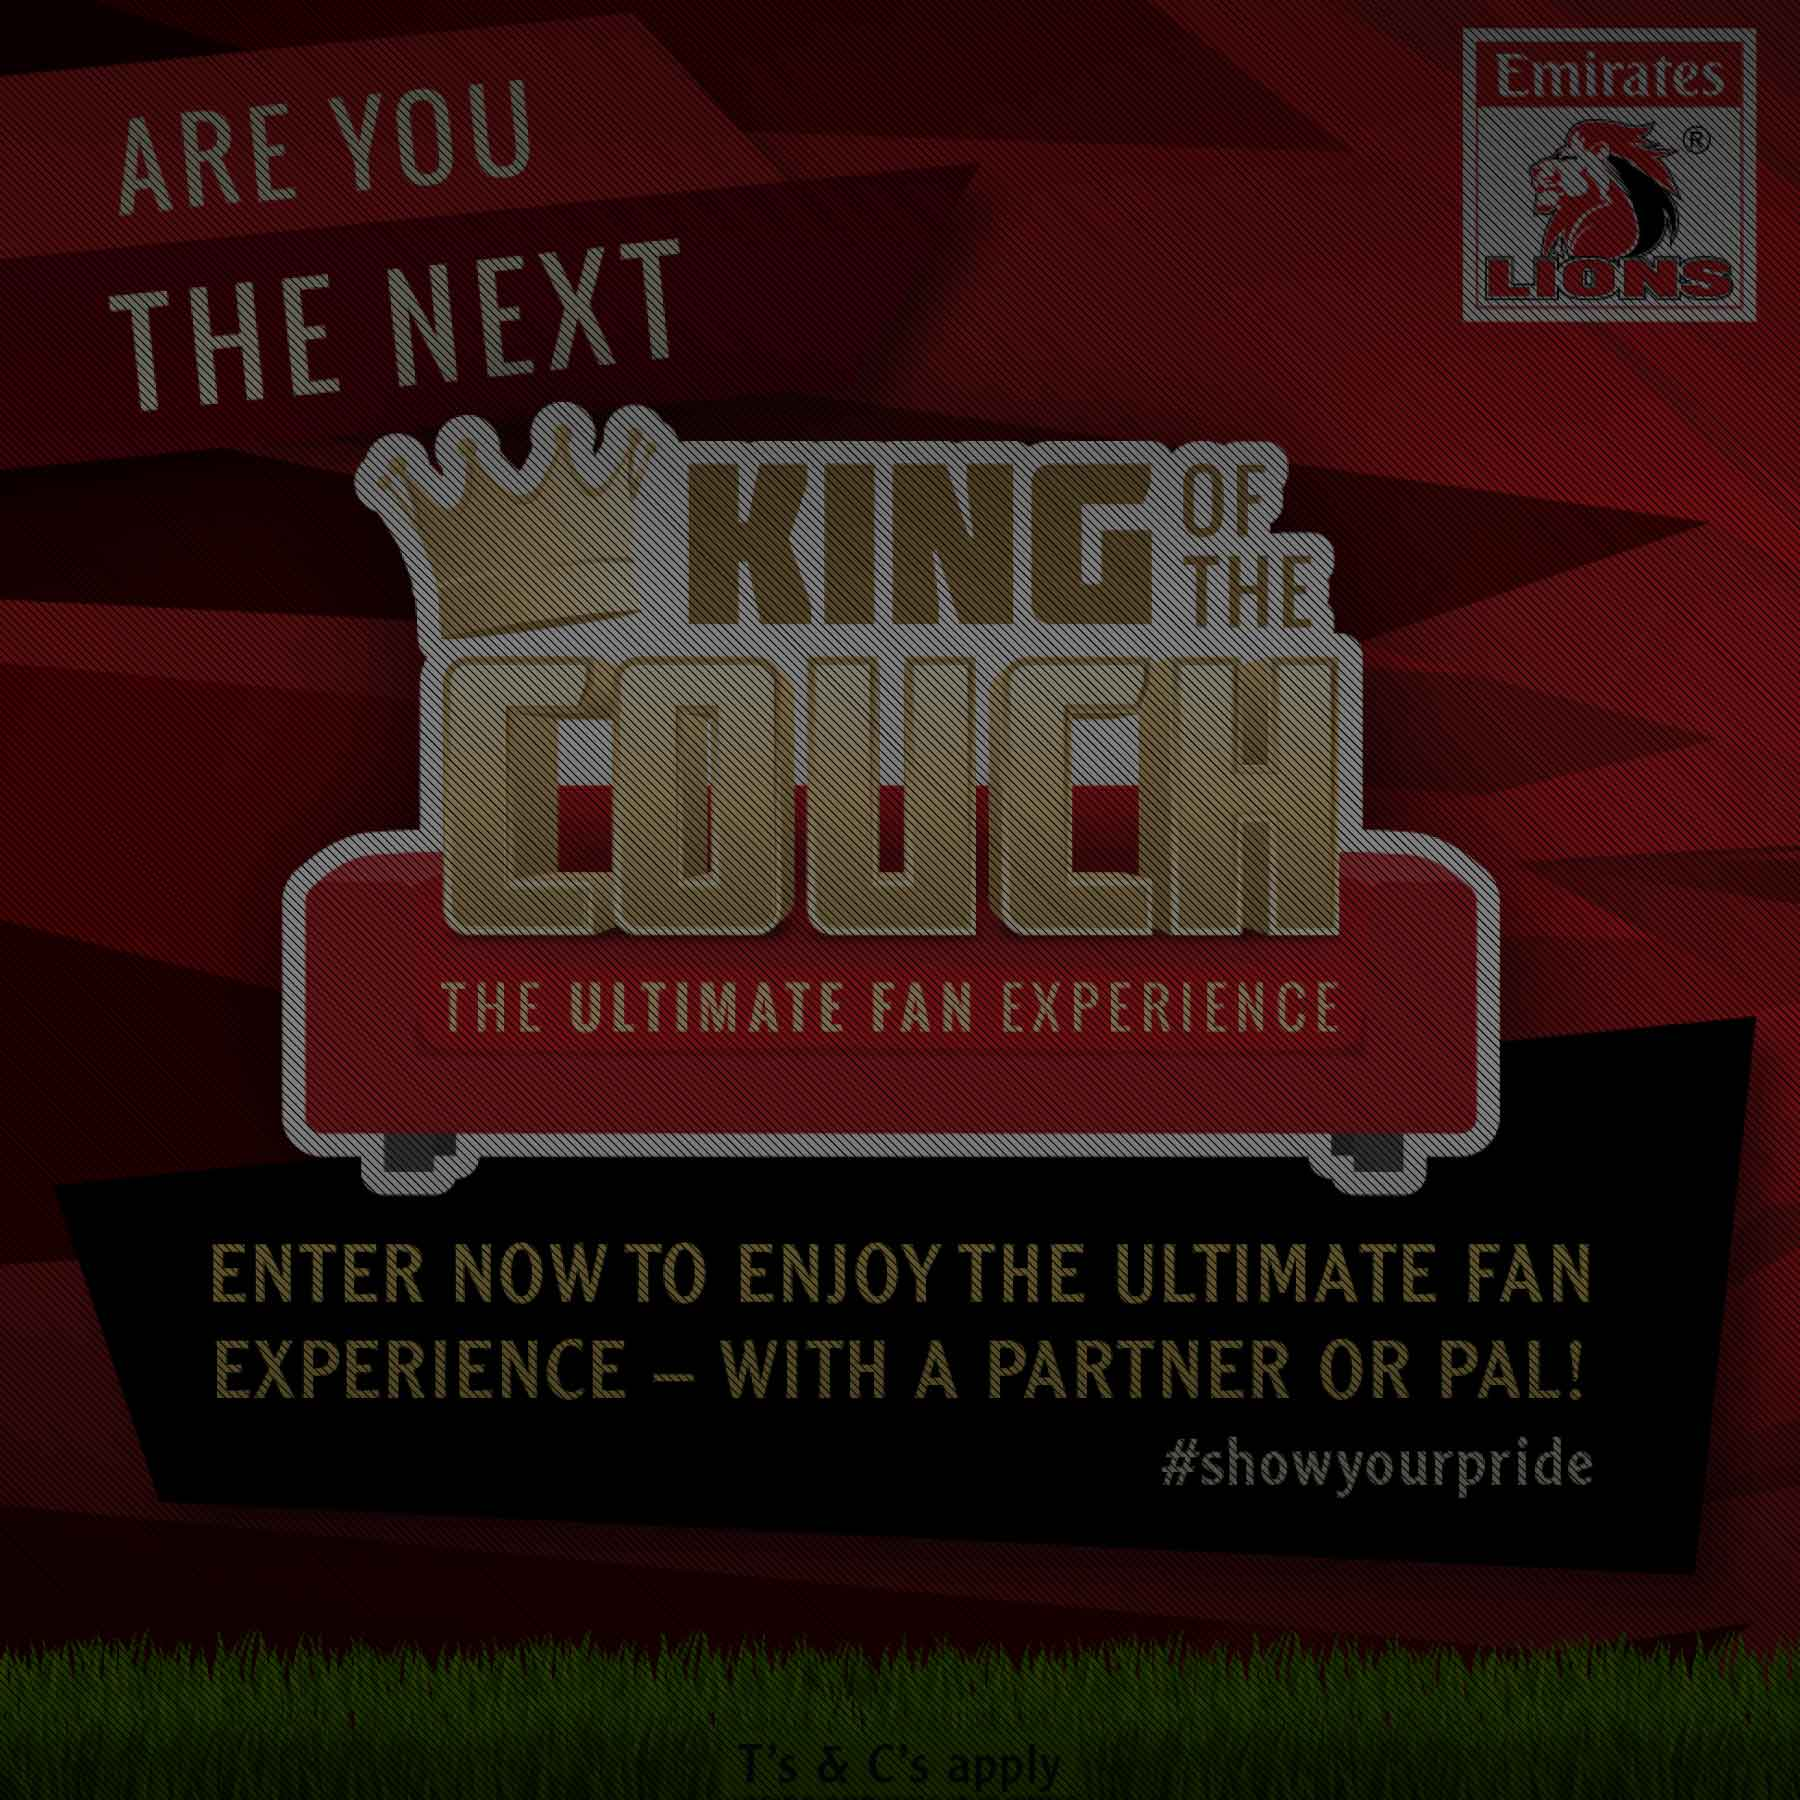 King of the Couch Advertising Campaign